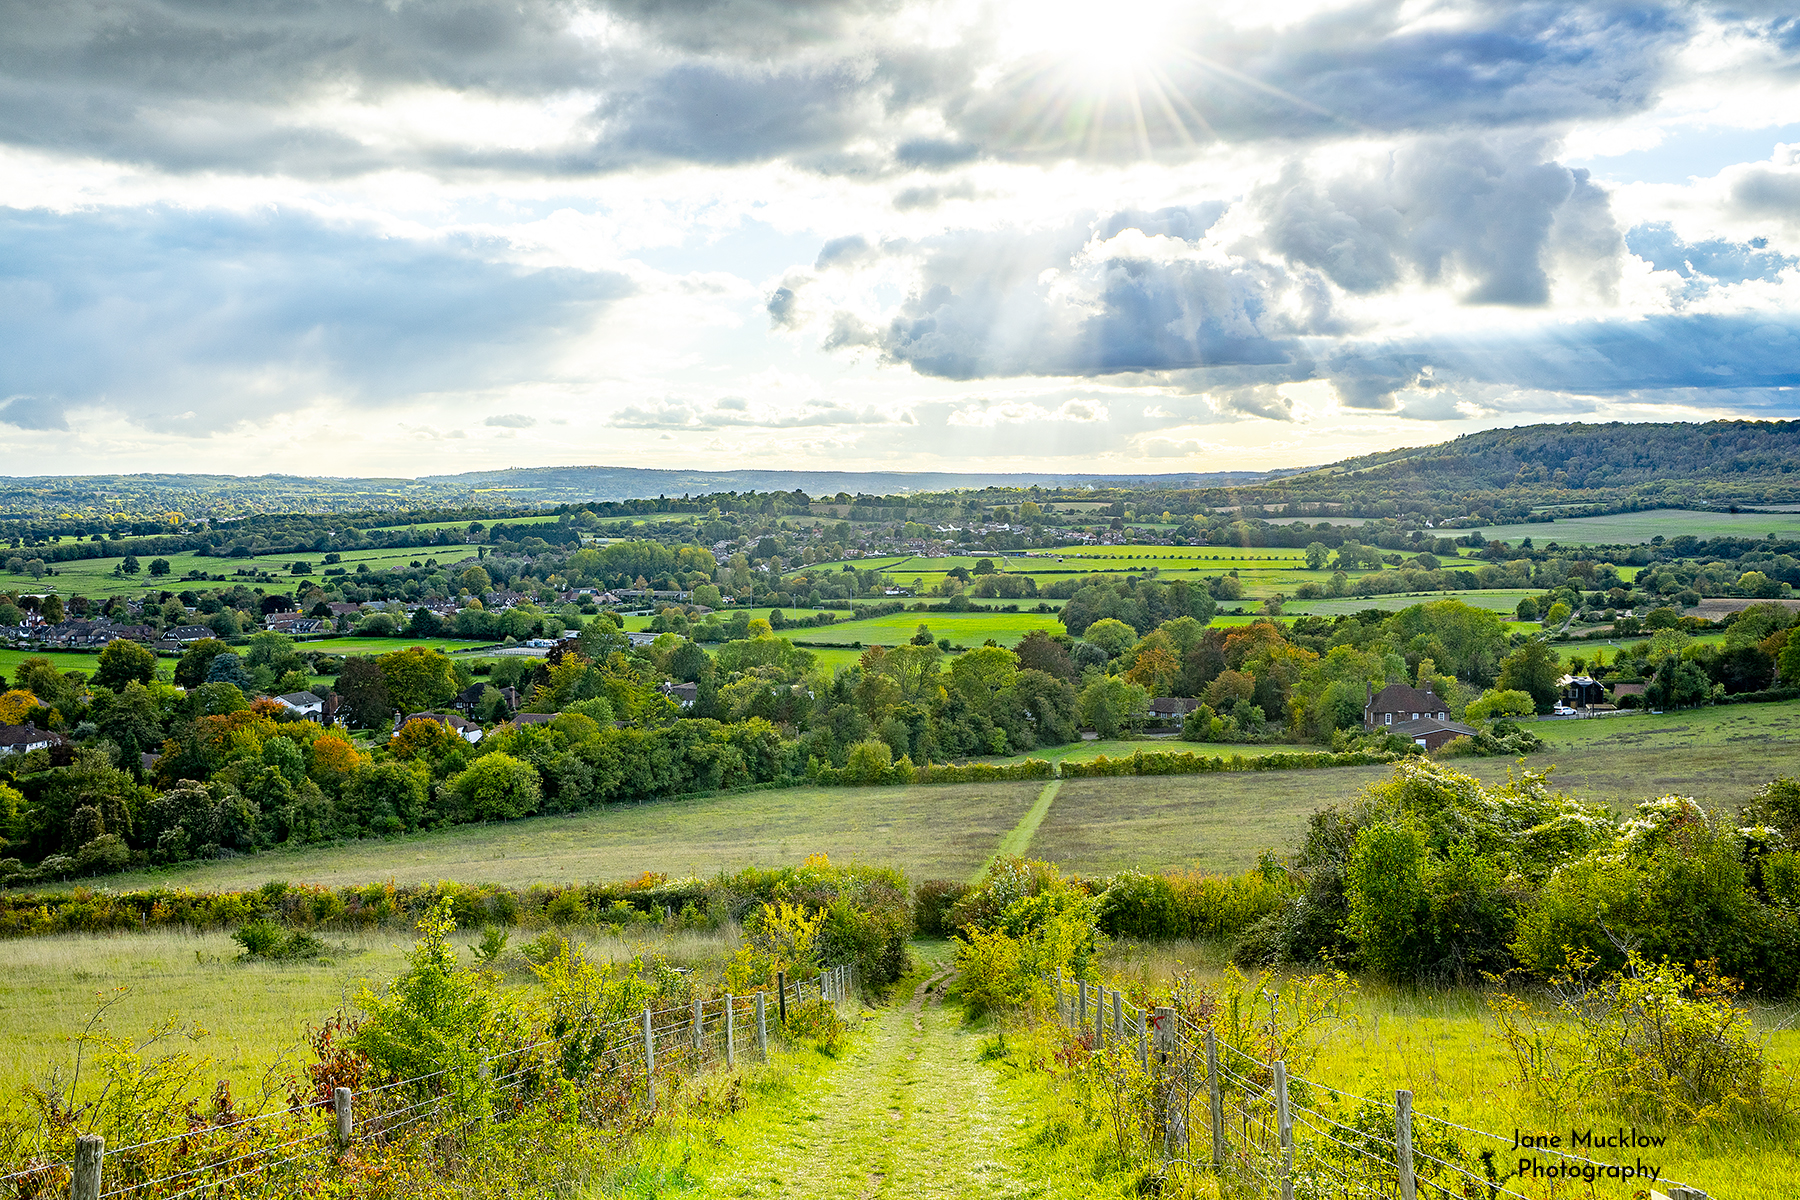 Photo of the Autumn view over Otford from the Mount by Jane Mucklow